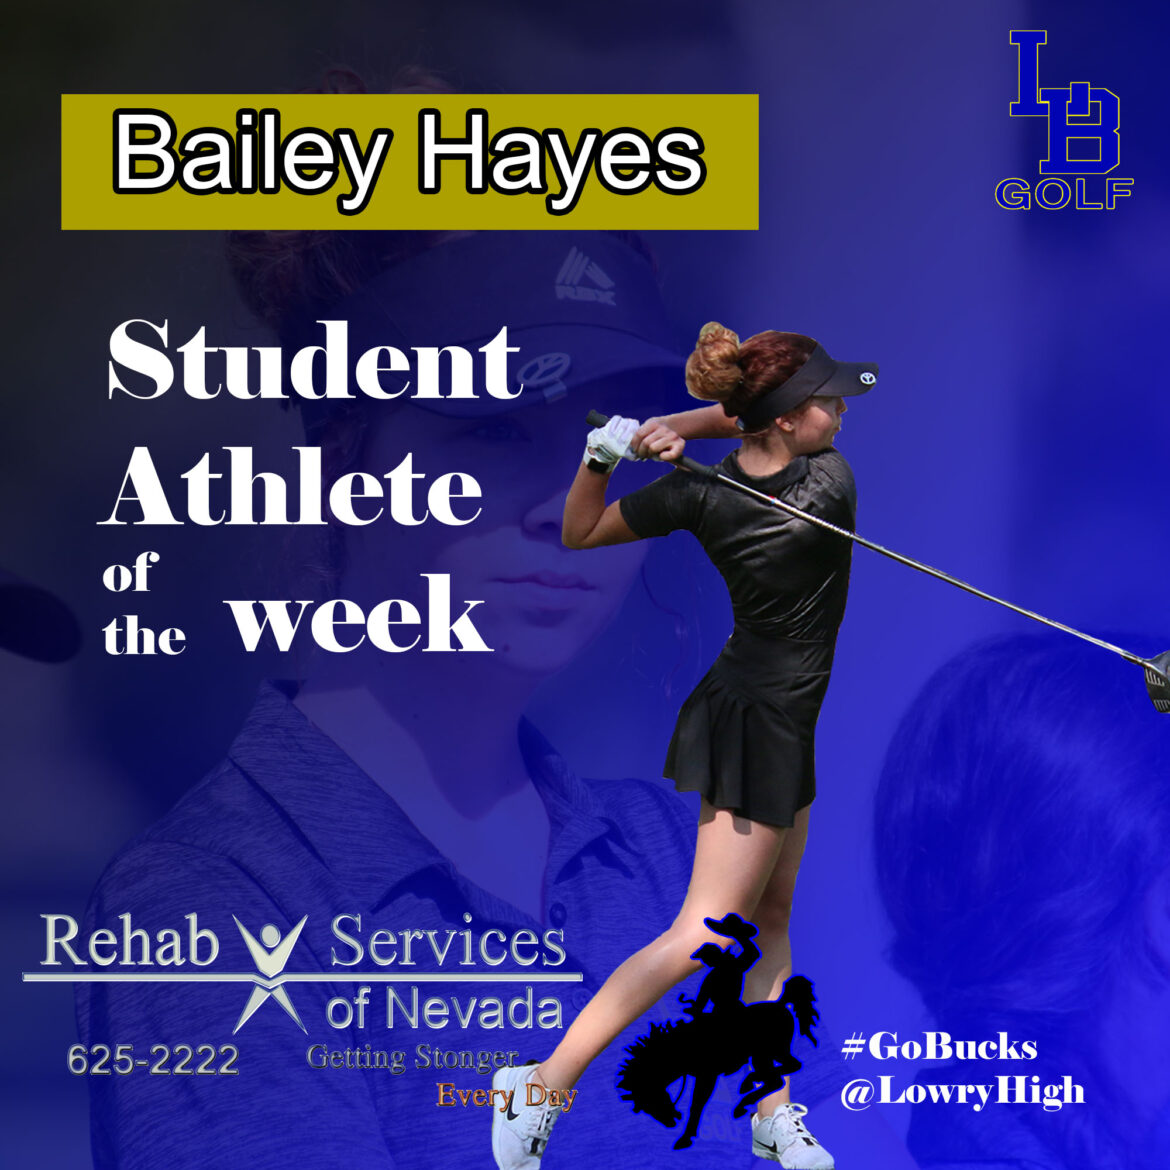 Bailey Hayes is Athlete of the Week for girl's golf